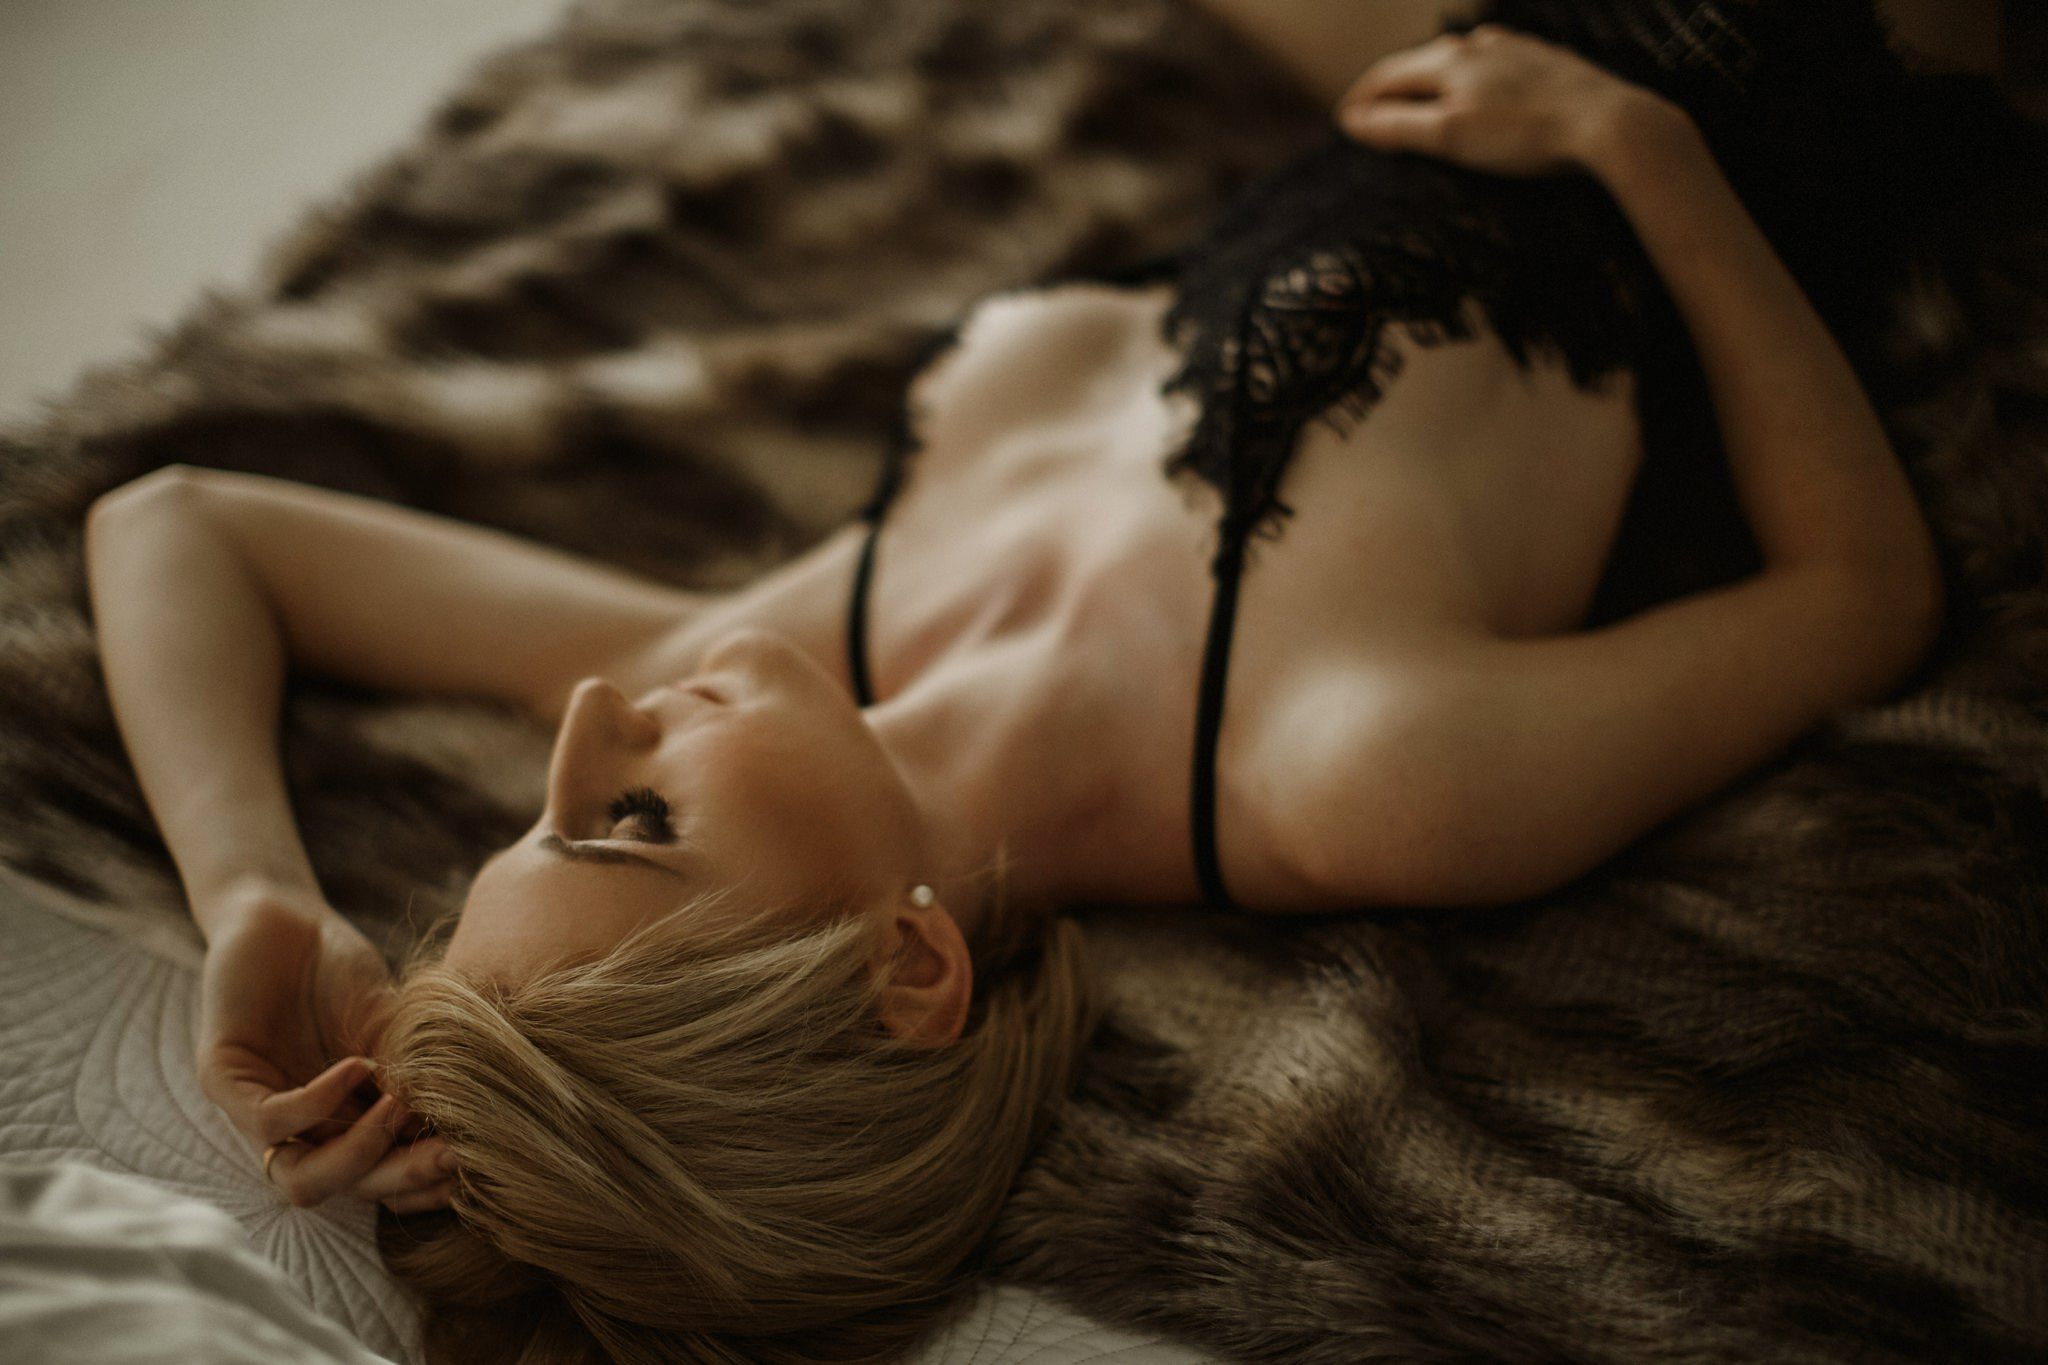 Sheffield_Boudoir_Photography_0020.jpg